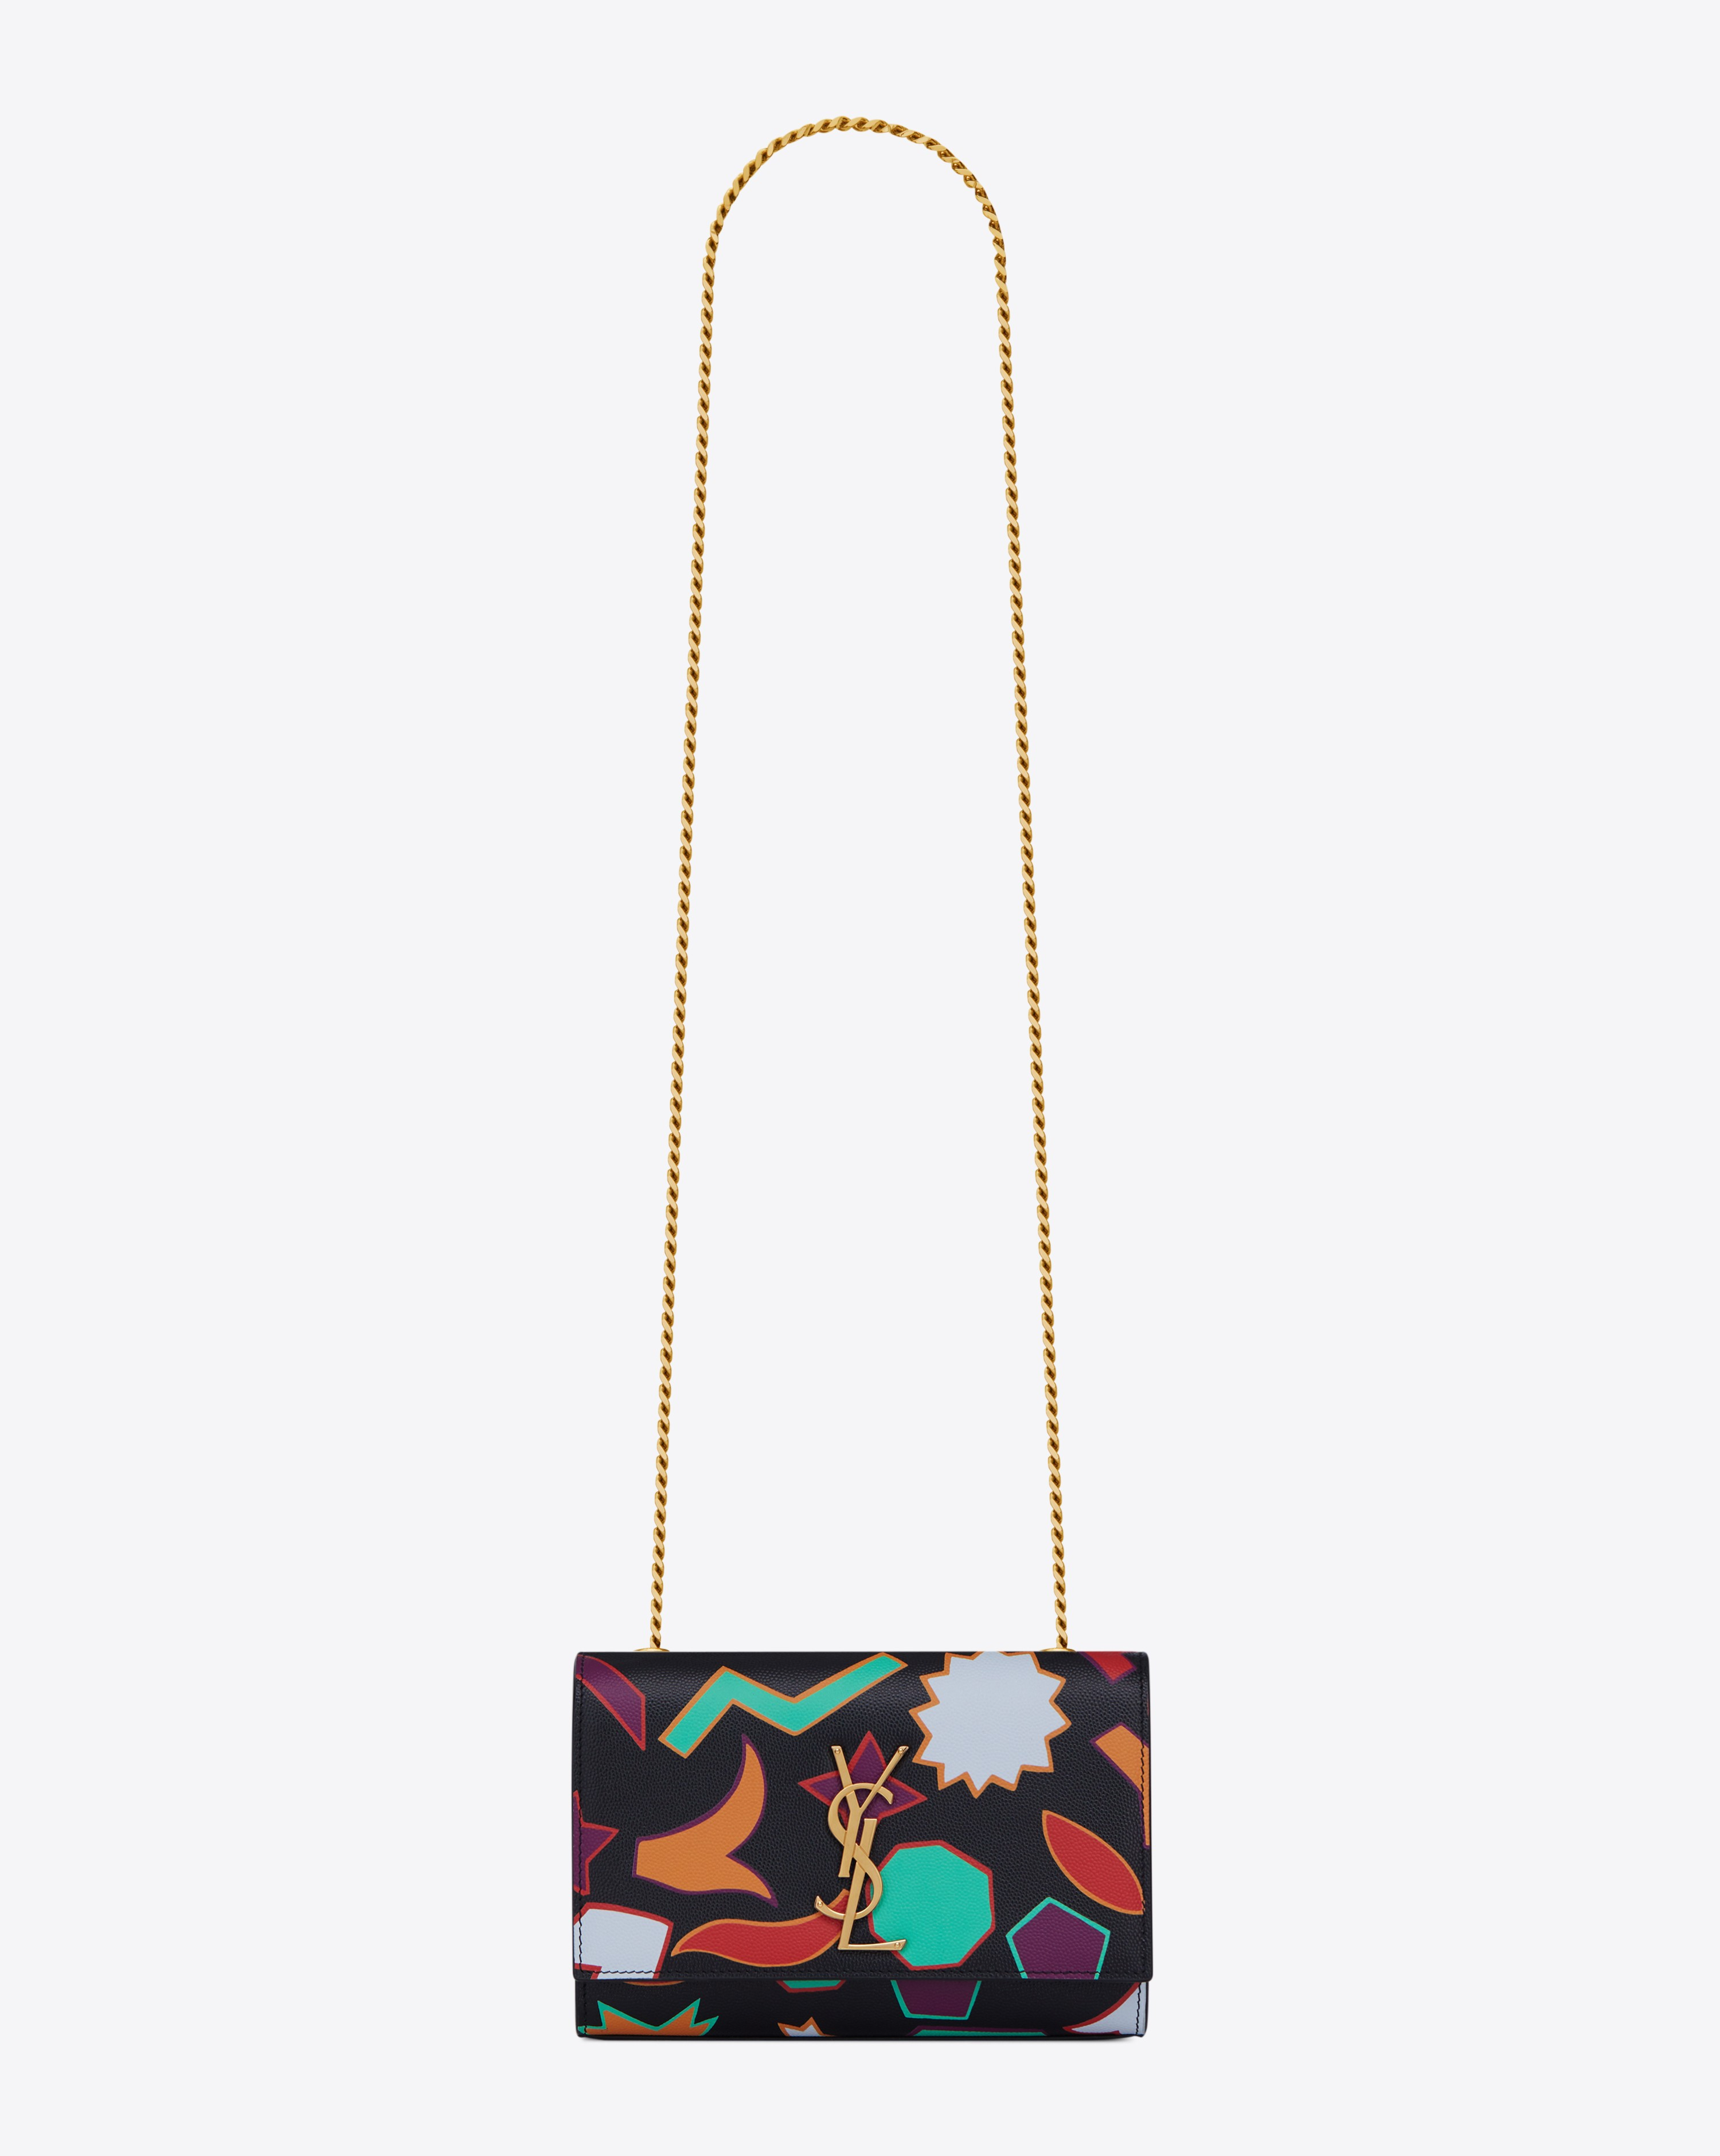 80ff907374a STYLE Edit: Saint Laurent's summer line of bags are a mark of  sophistication | South China Morning Post